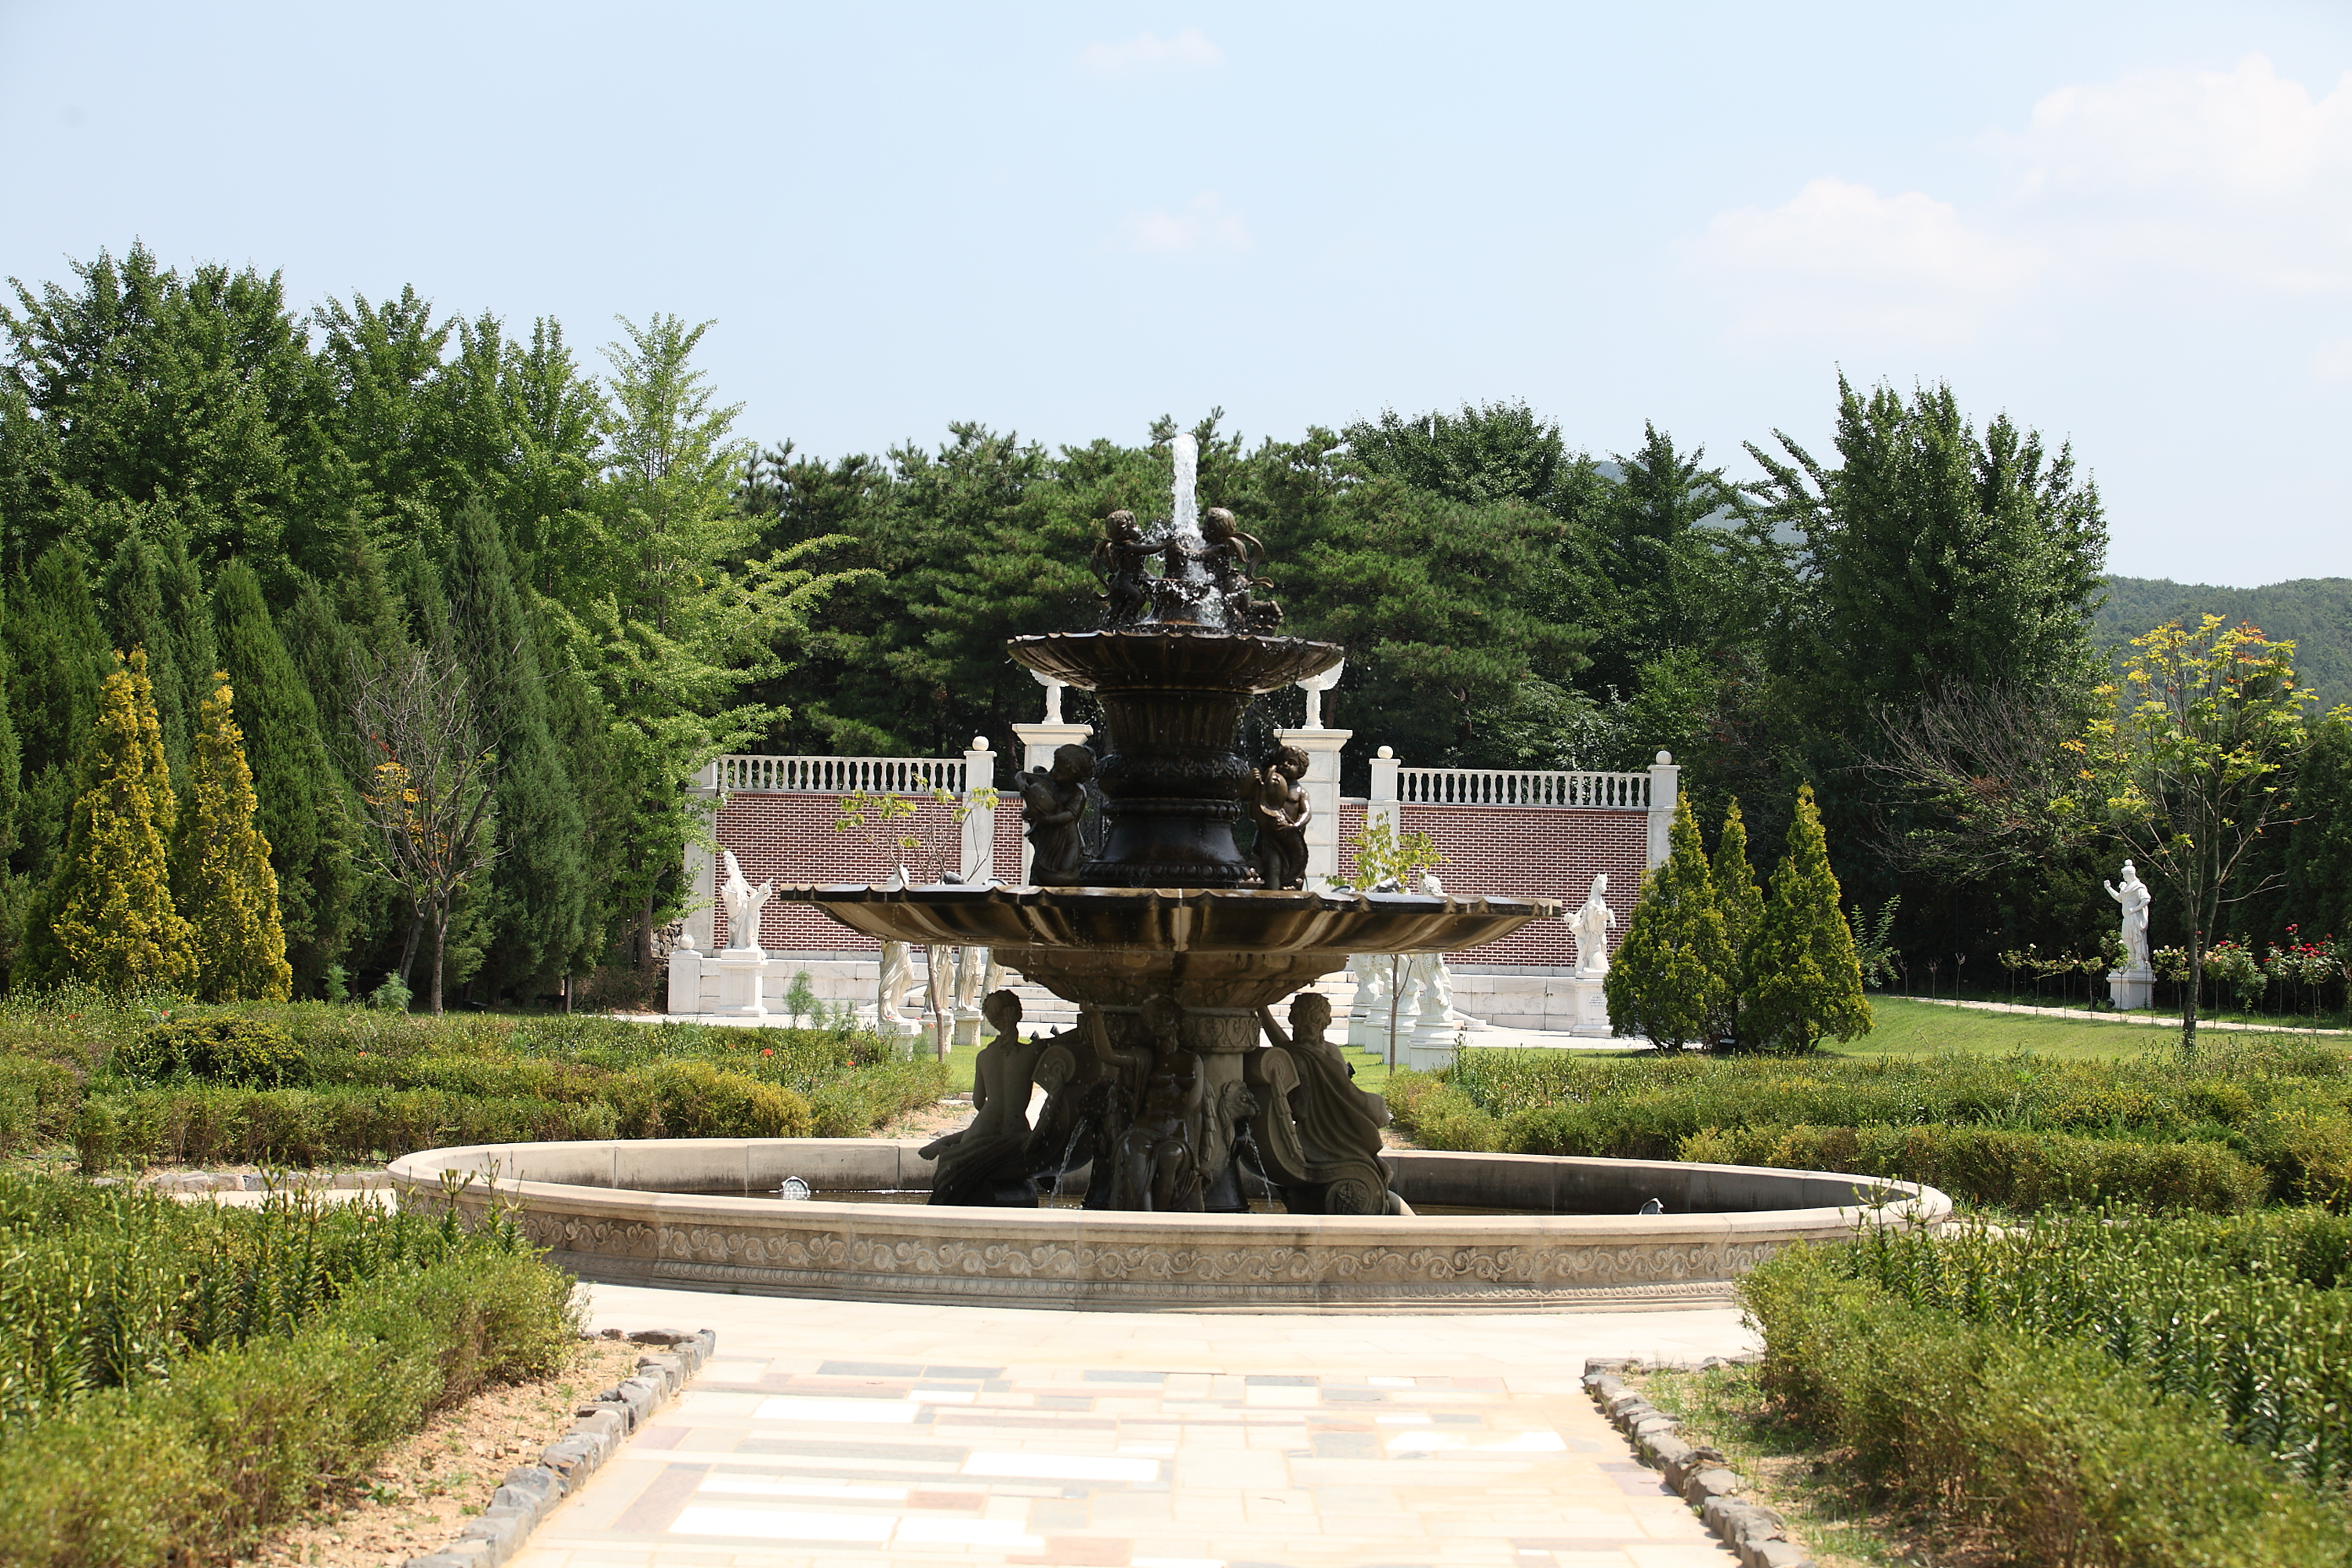 A front view of the central fountain of Byeokchojimunhwa Arboretum. It's 2-stroy fountain and decorated with baby angels.